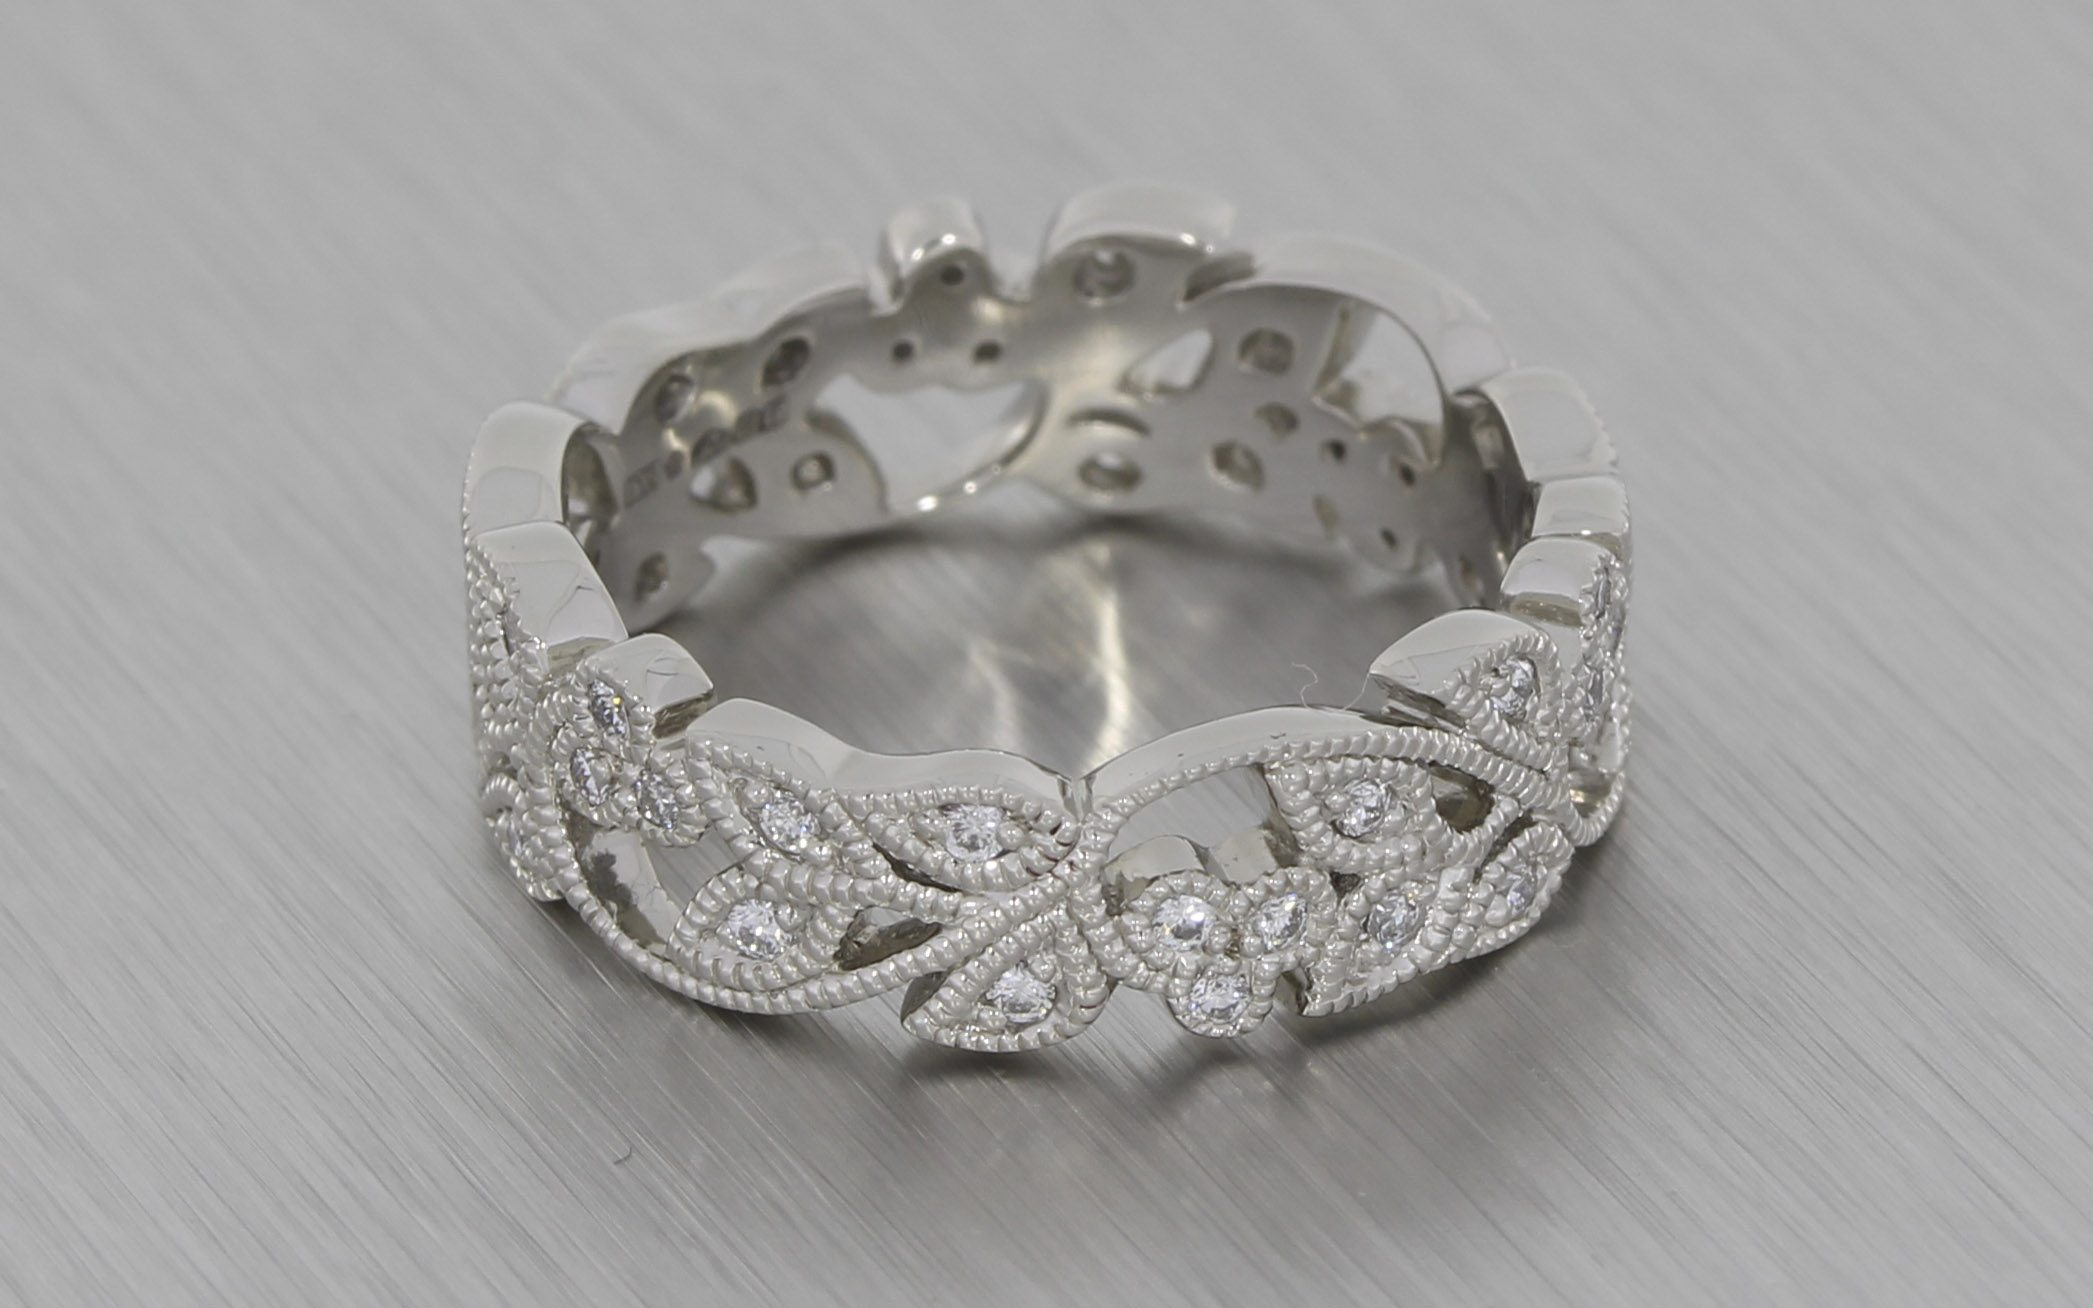 stunning vintage floral style platinum wedding band milgrain platinum wedding band Stunning Vintage Floral Style Platinum Wedding Band with Milgrain Portfolio Durham Rose